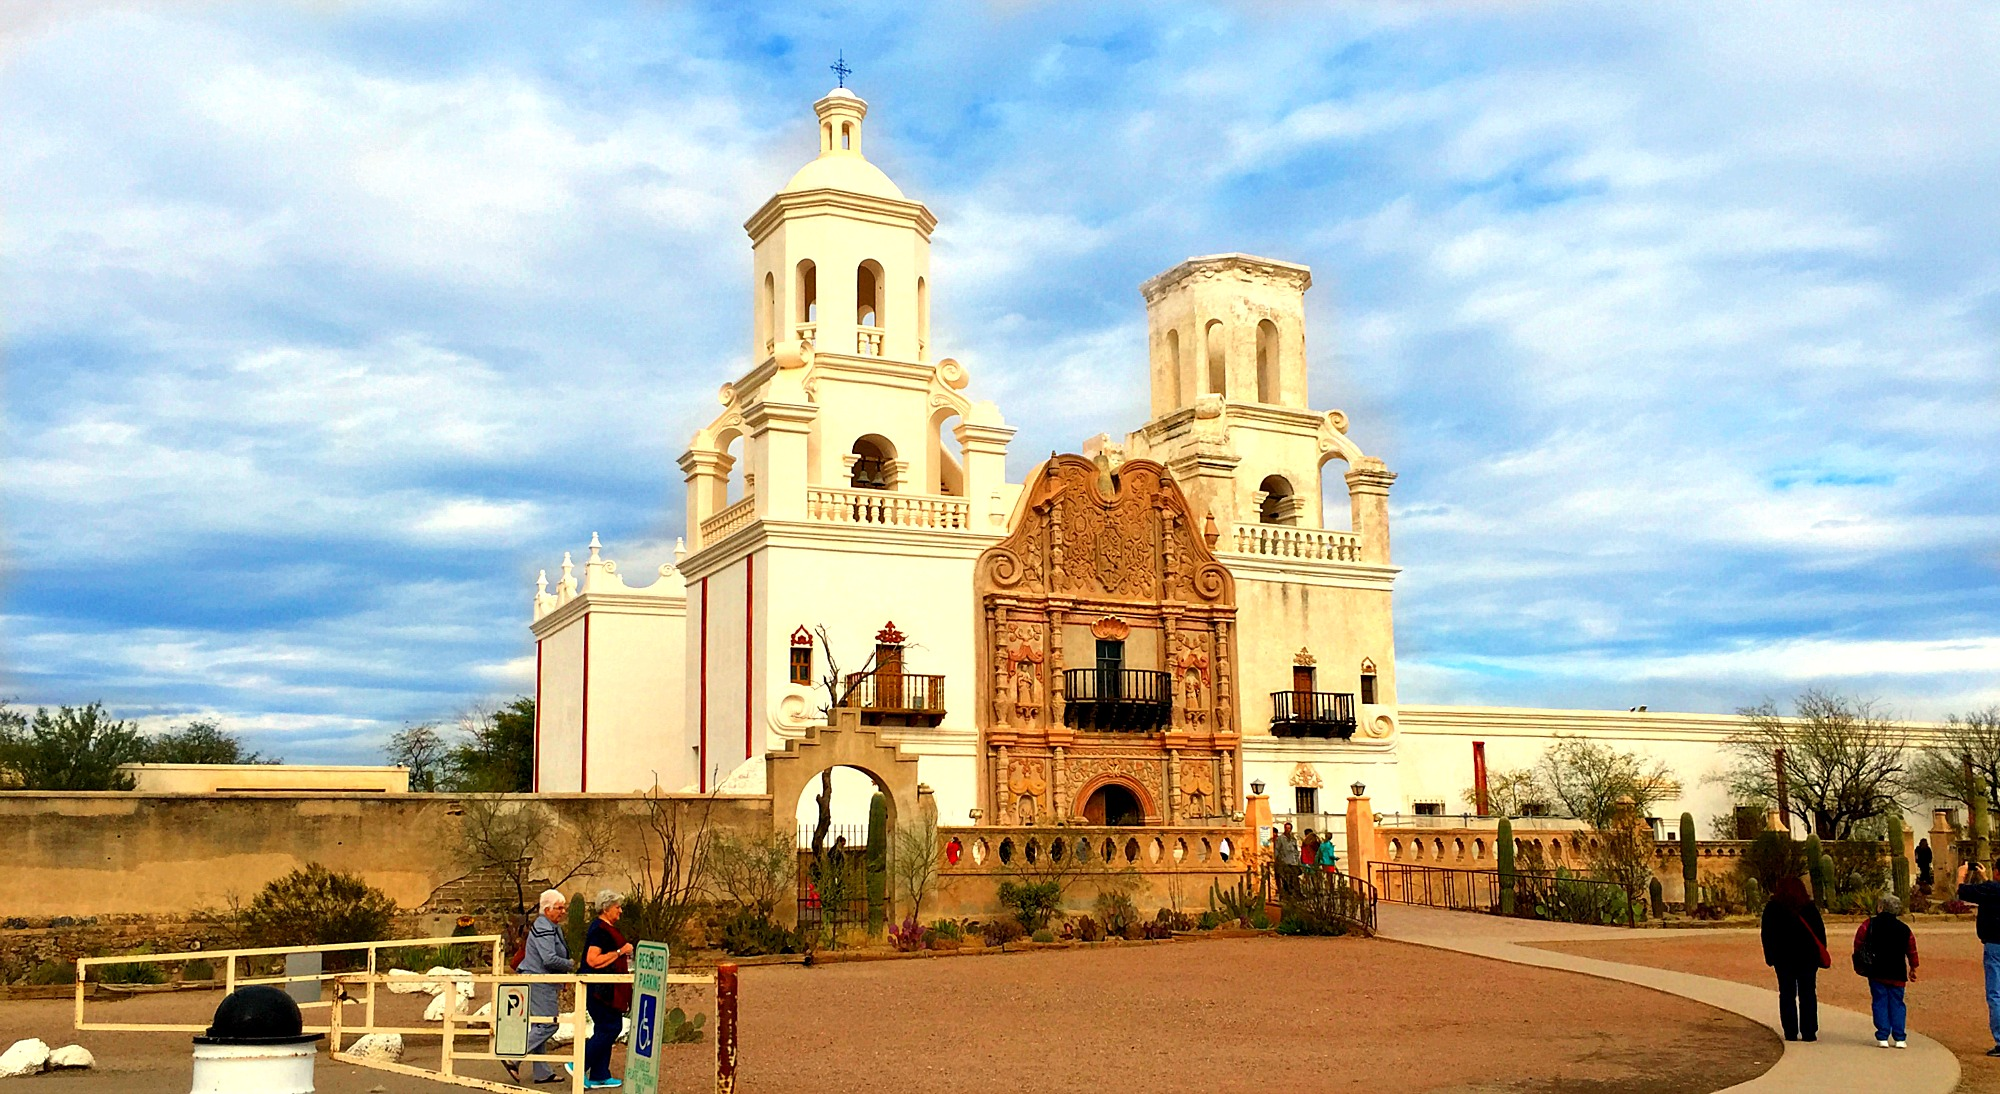 Mission San Xavier del Bac - The Traveling Sitcom